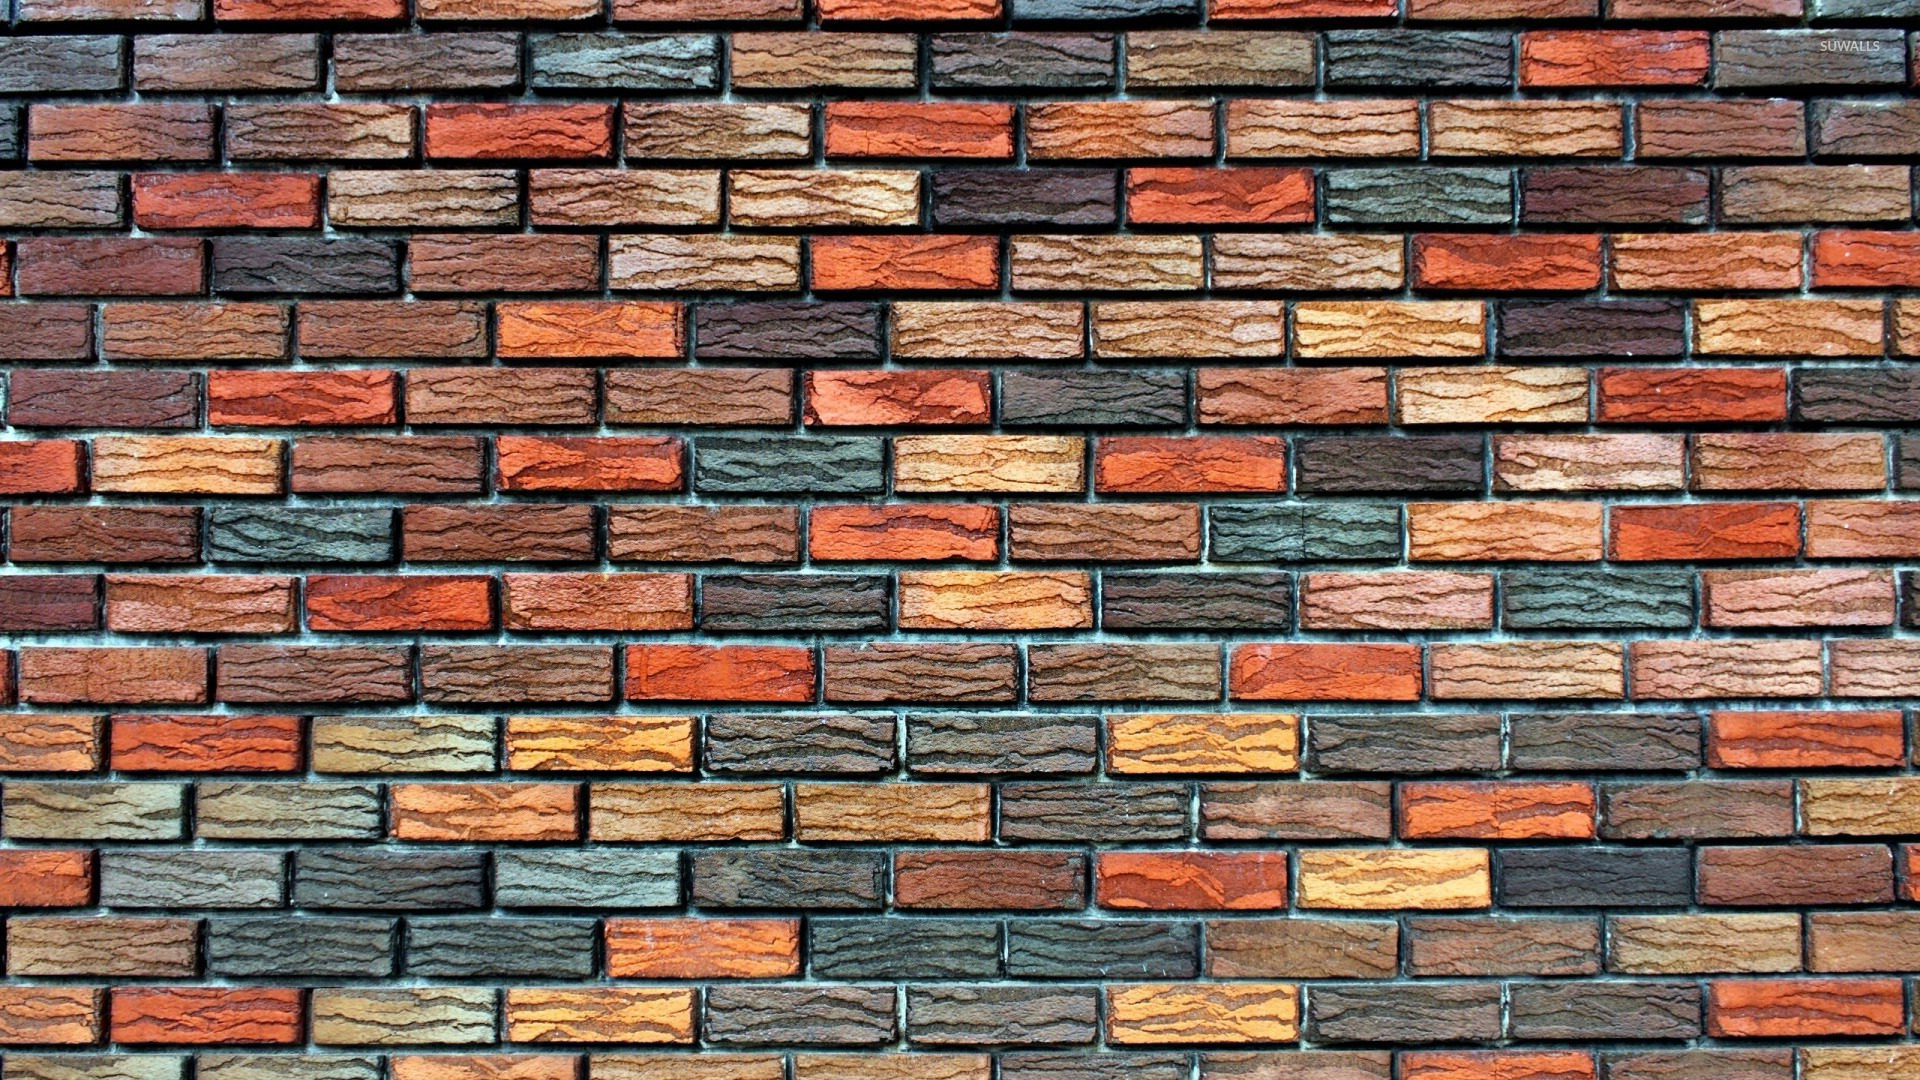 Brick wallpaper colors hd wallpapers hd backgrounds for Wallpapering a wall